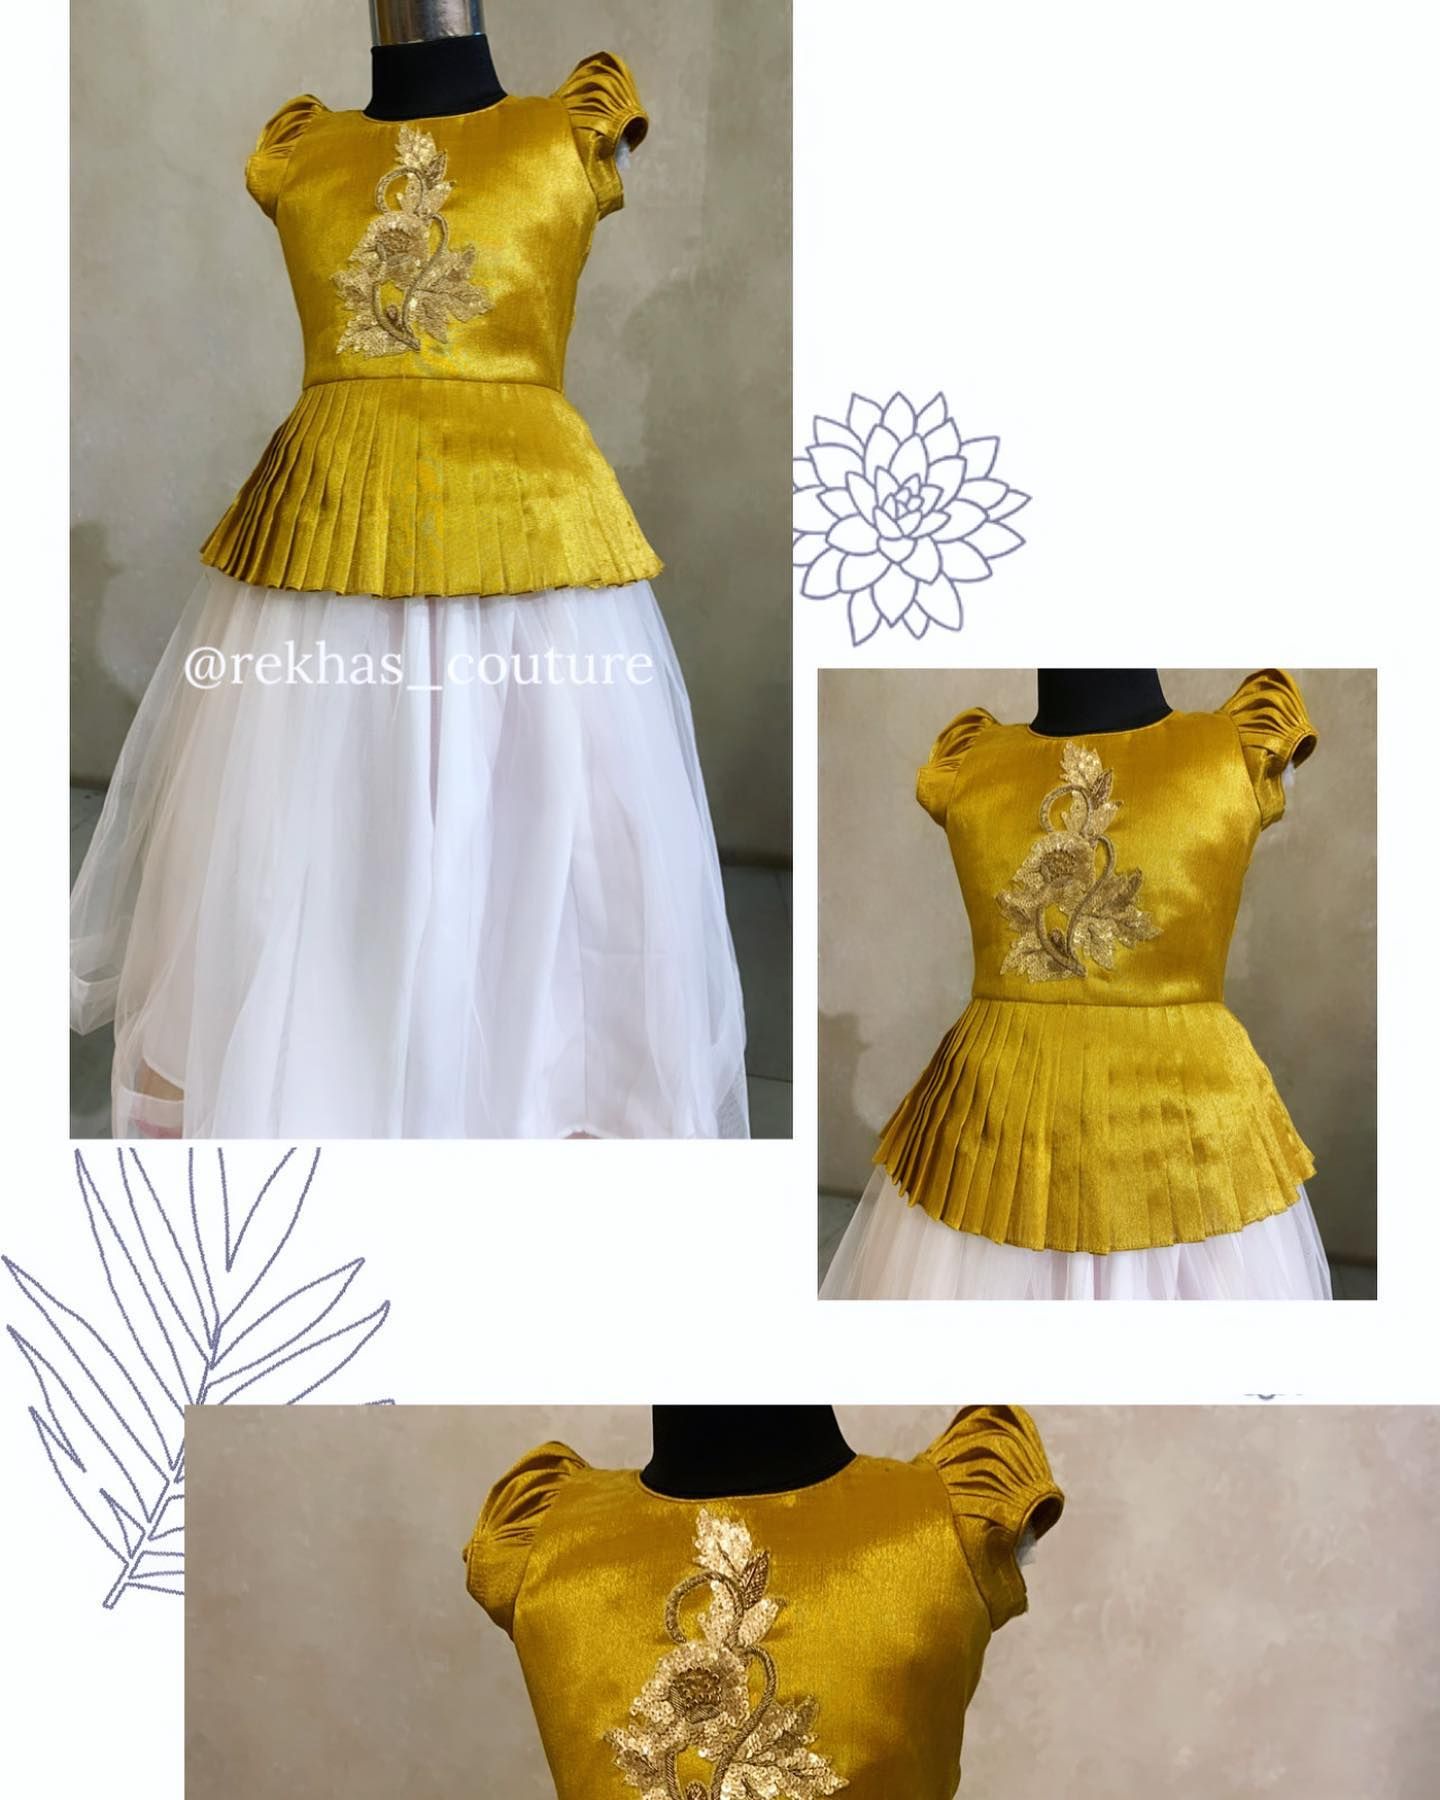 Beautiful kids pearl white skirt and gold shade peplum top with hand embroidery work.  2021-02-24